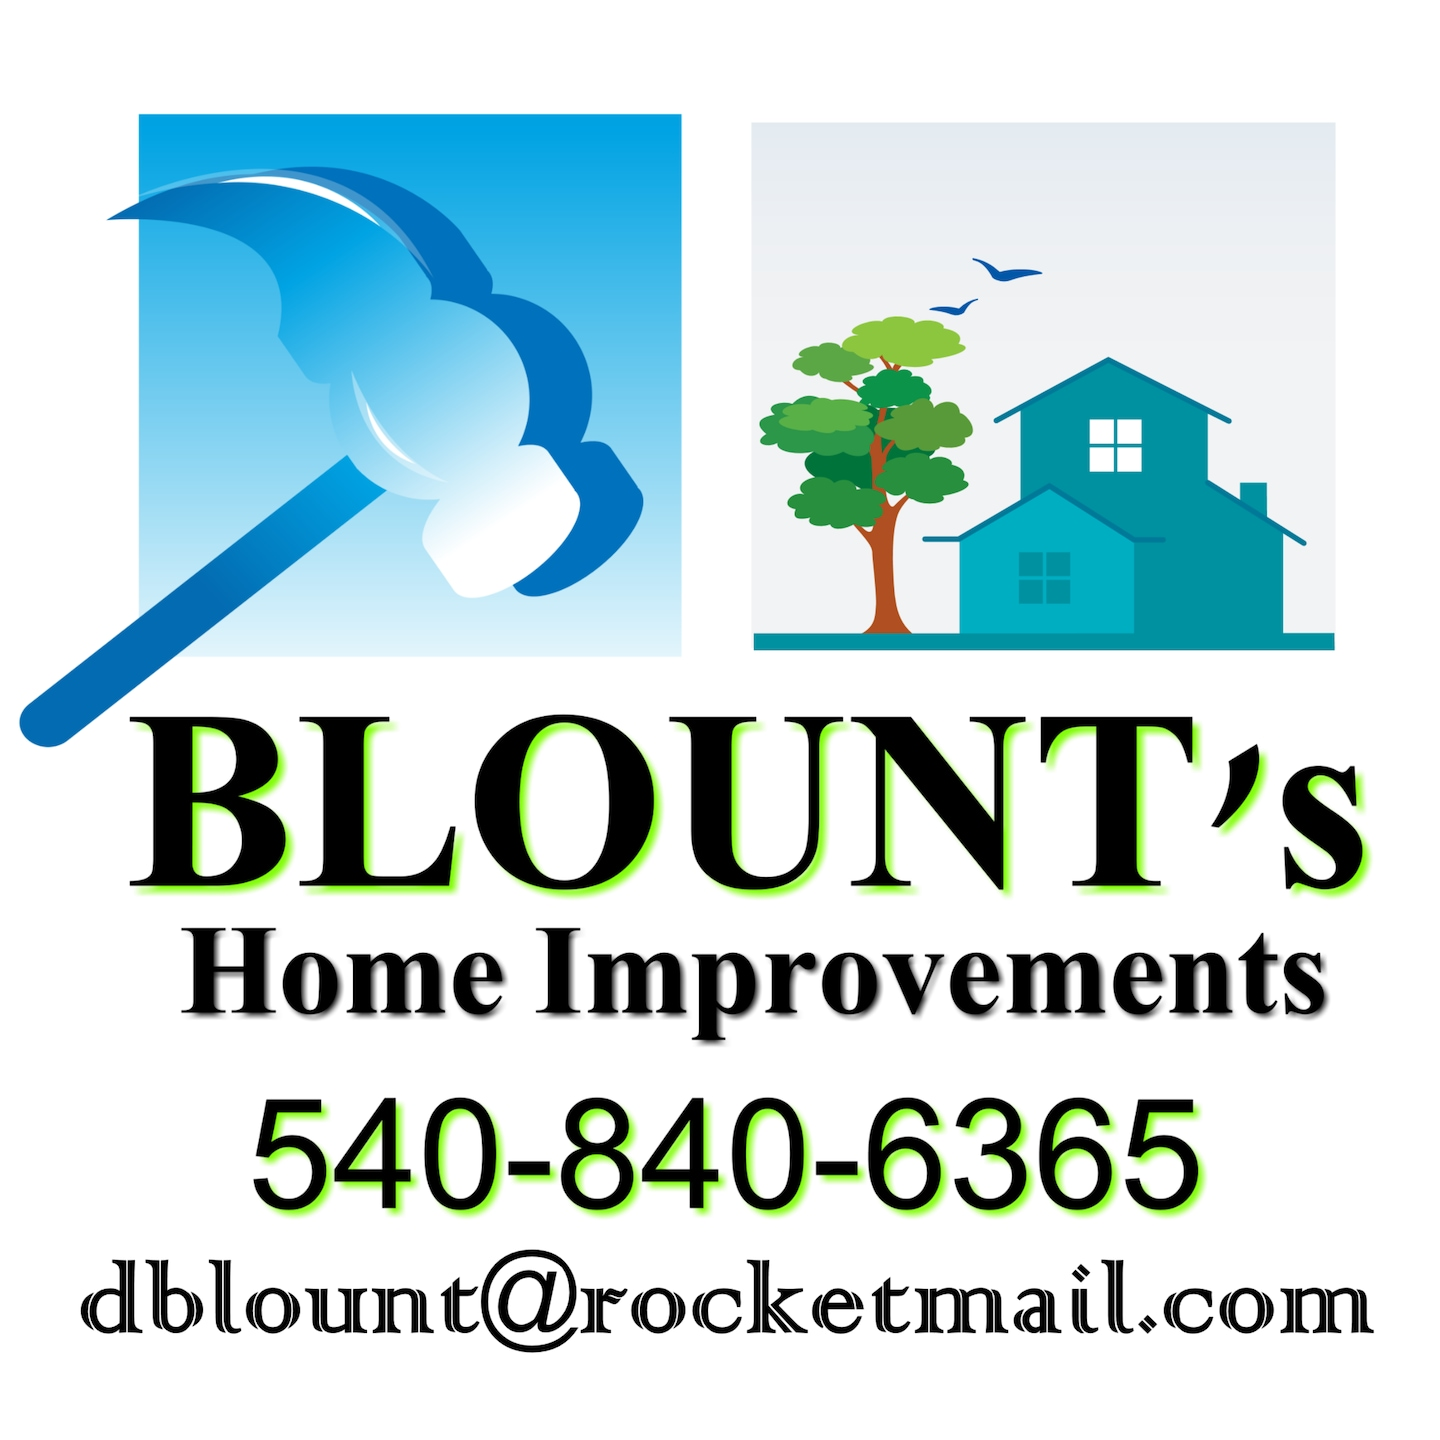 Blounts Home Improvements